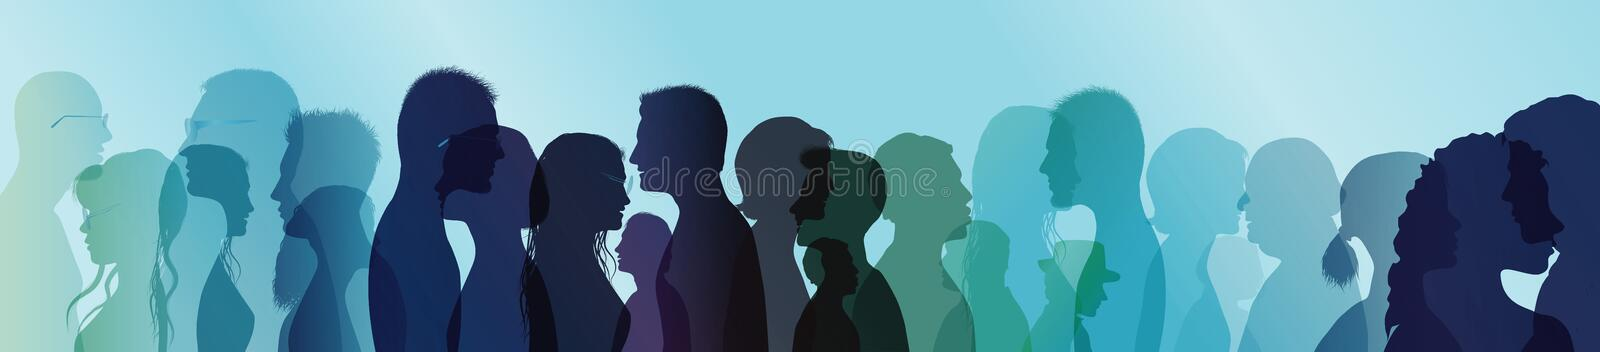 Talking crowd. People talking. Dialogue between people. Colored silhouette profiles. Multiple exposure stock illustration